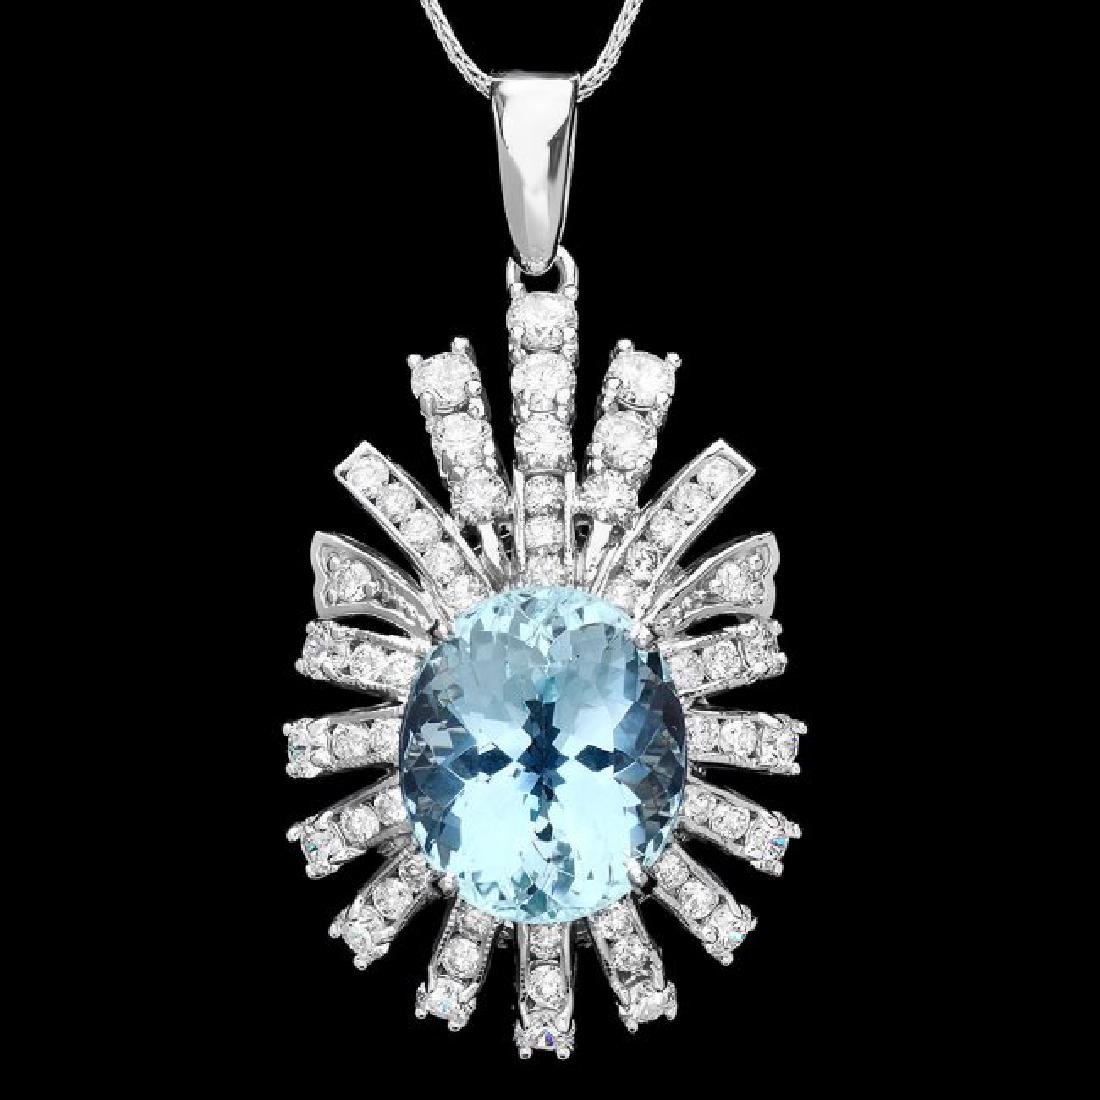 14k Gold 8ct Aquamarine 2.50ct Diamond Pendant